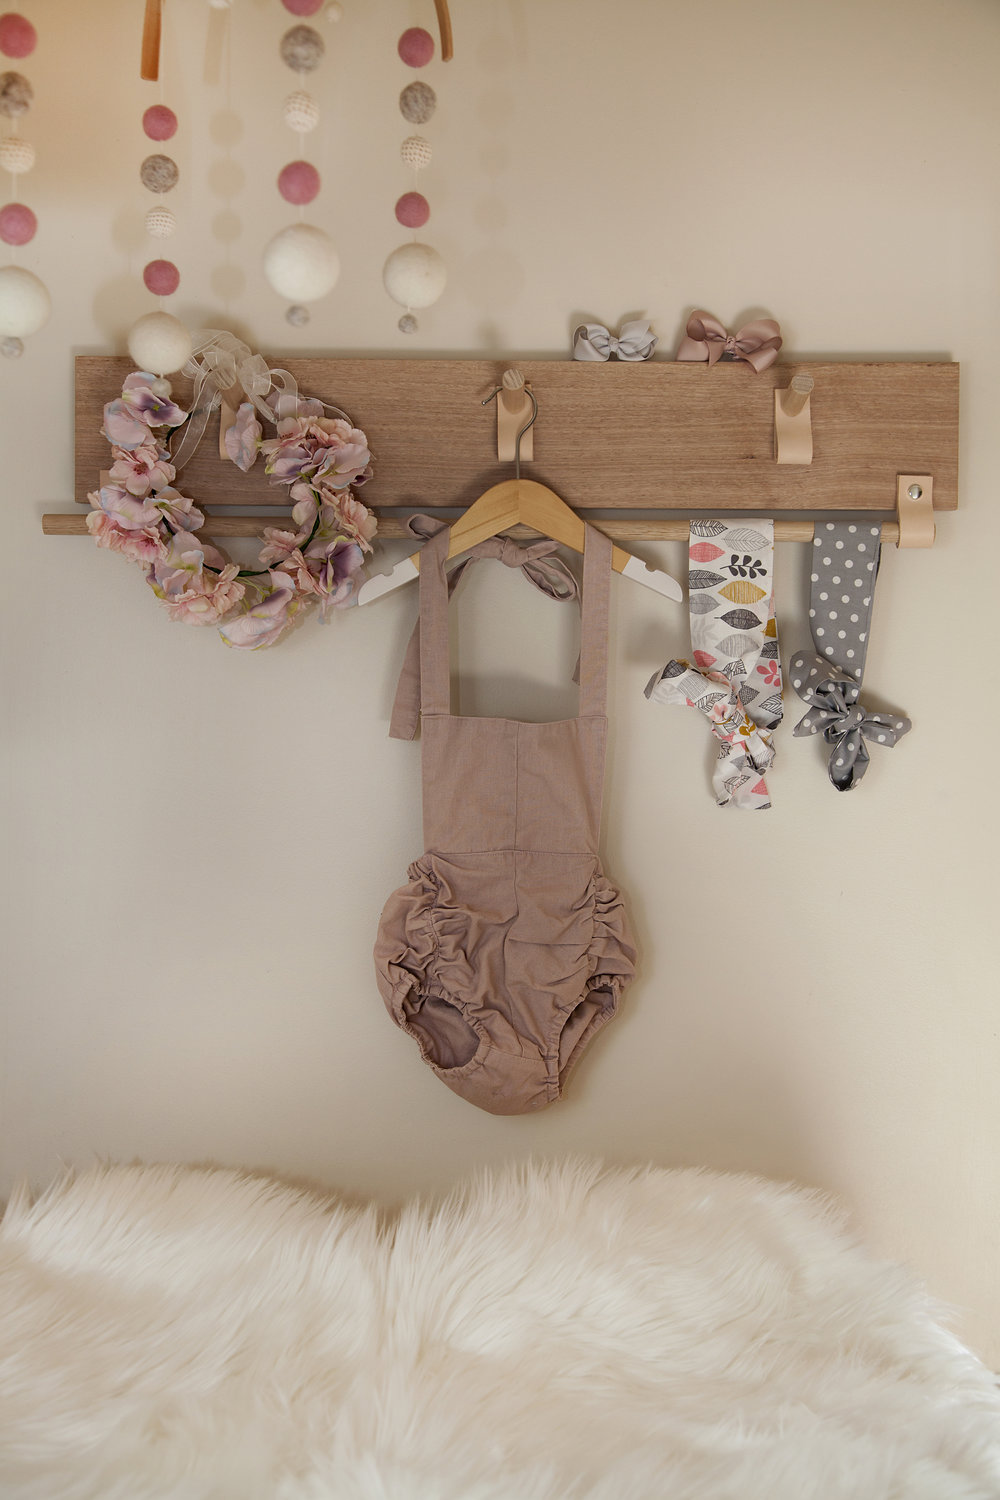 The perfect way to display her pretties. Accessory rack – Interior Motives Aus, Romper – Hubble and Duke, Head wraps – Lulu & Lo, Flower crown and bows – Branche